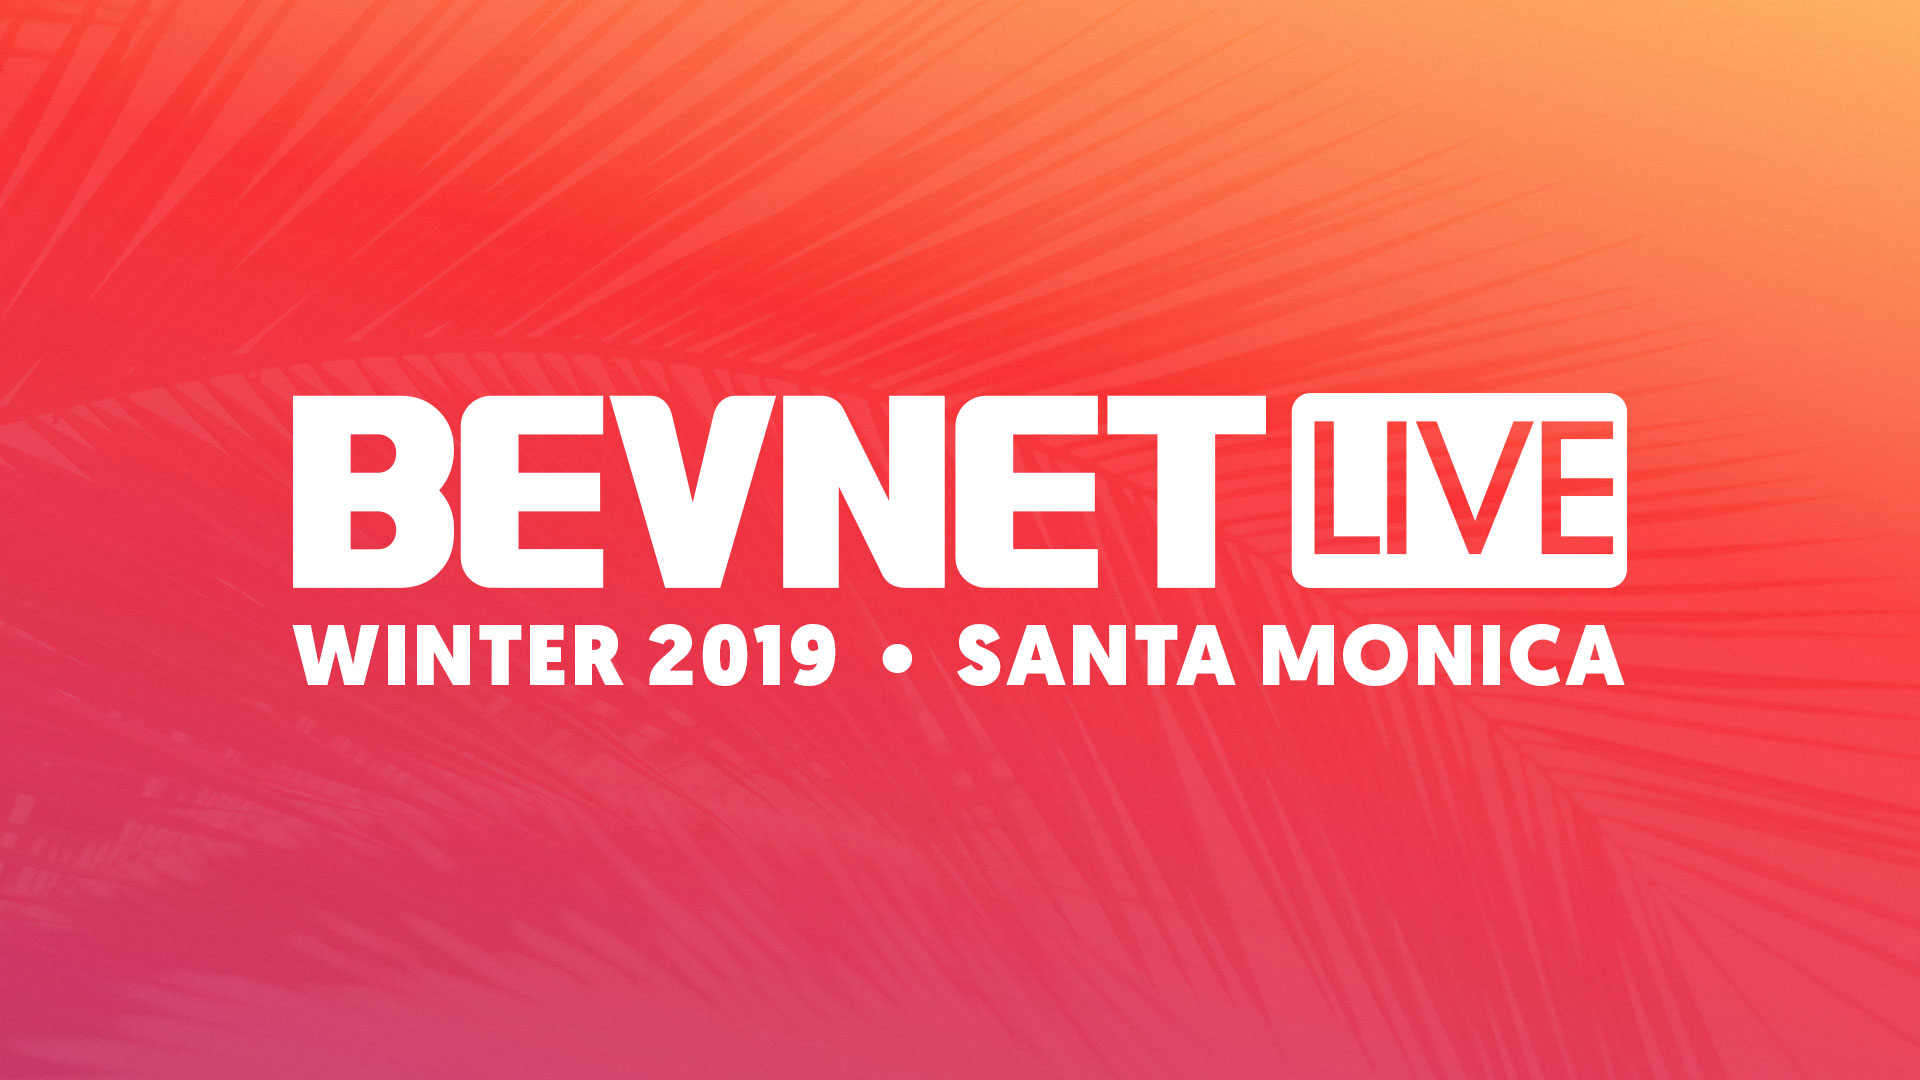 BevNET Live Winter 2019: Livestream Studio